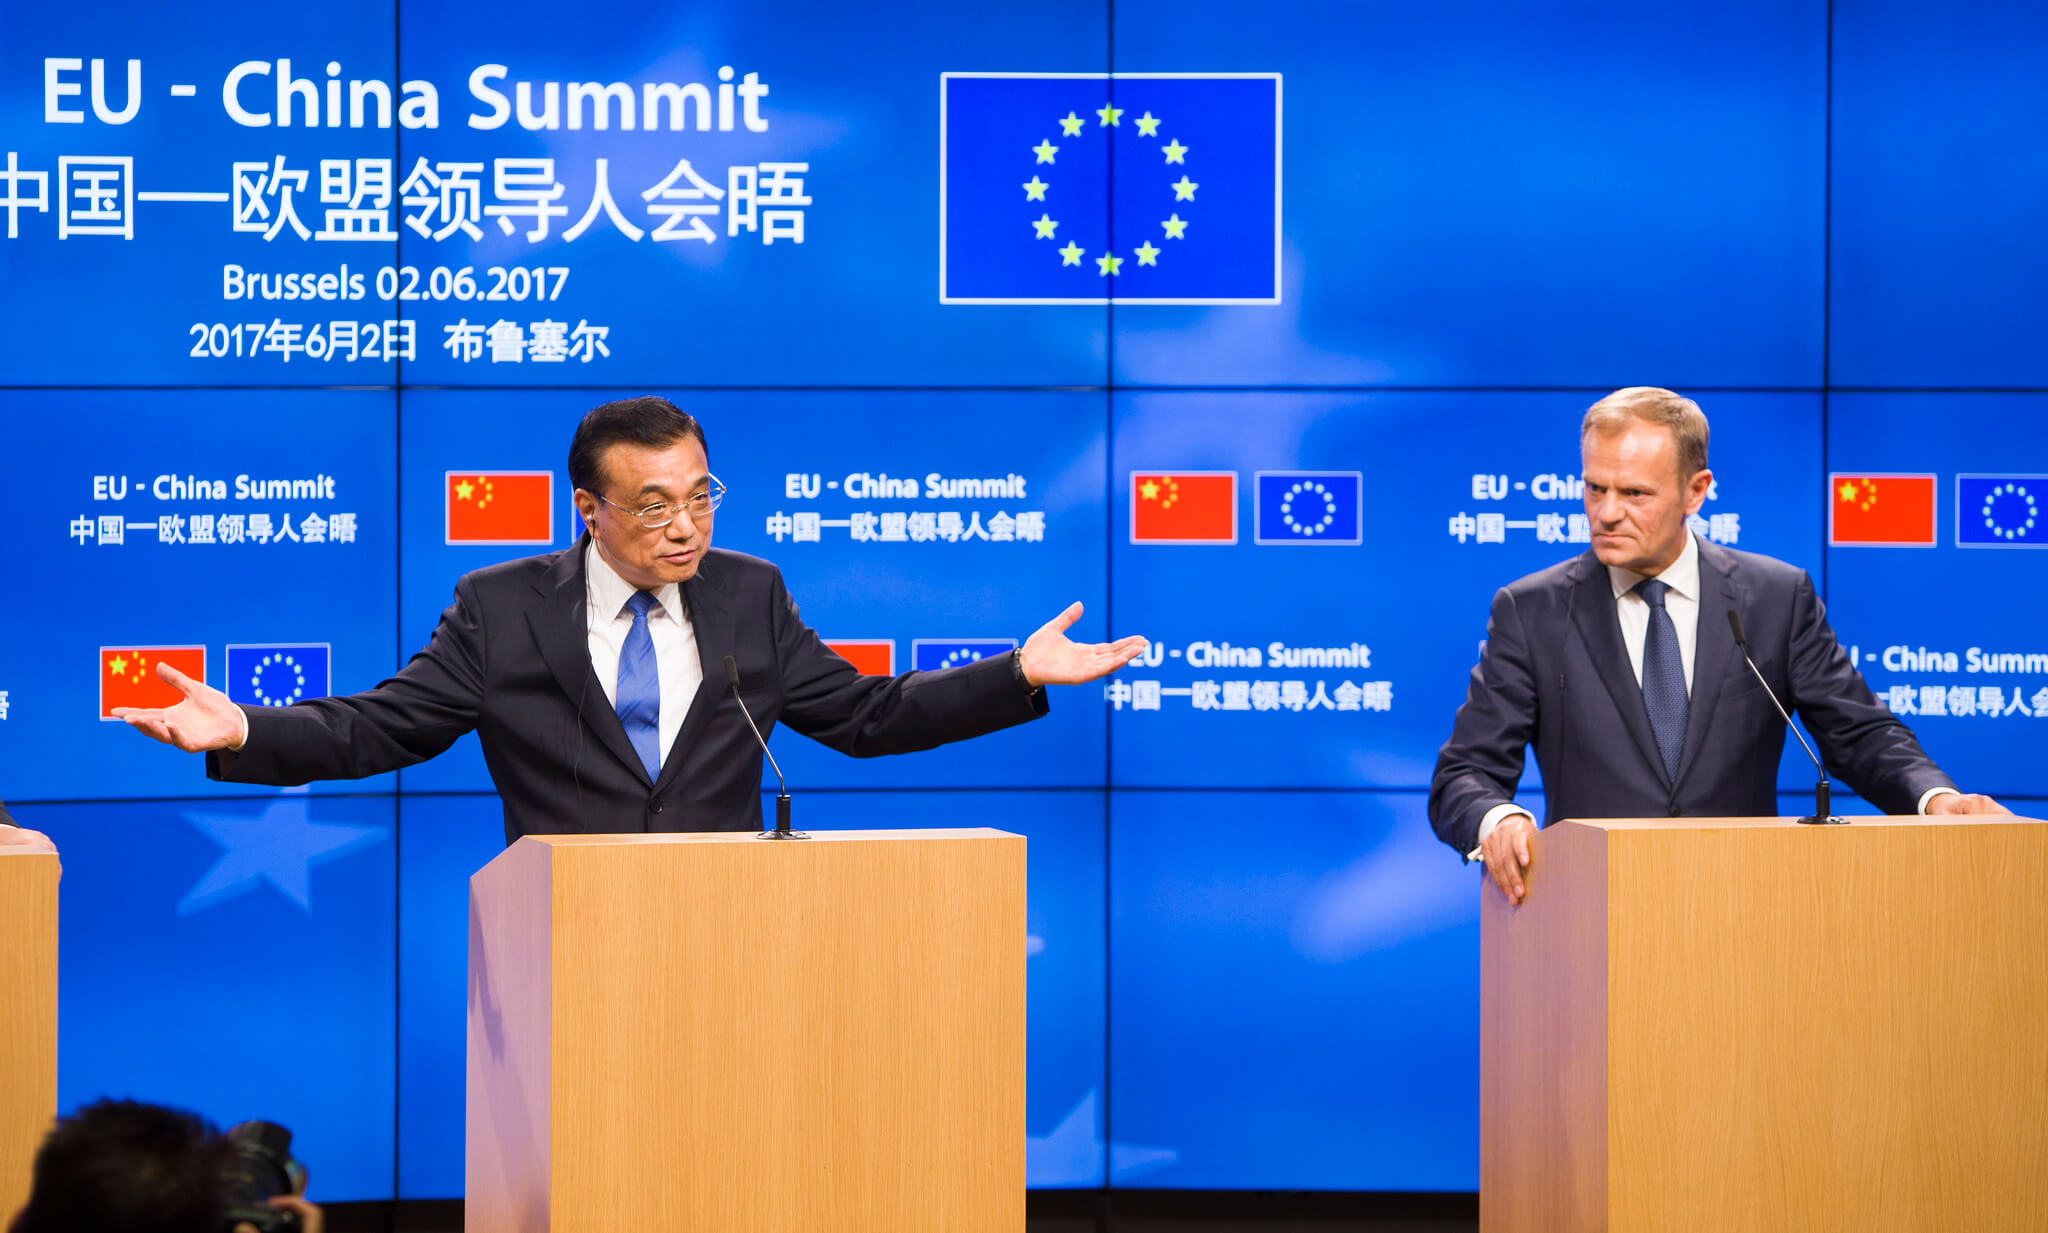 EU-China Summit in Brussels 2017 © European Council President / Flickr.